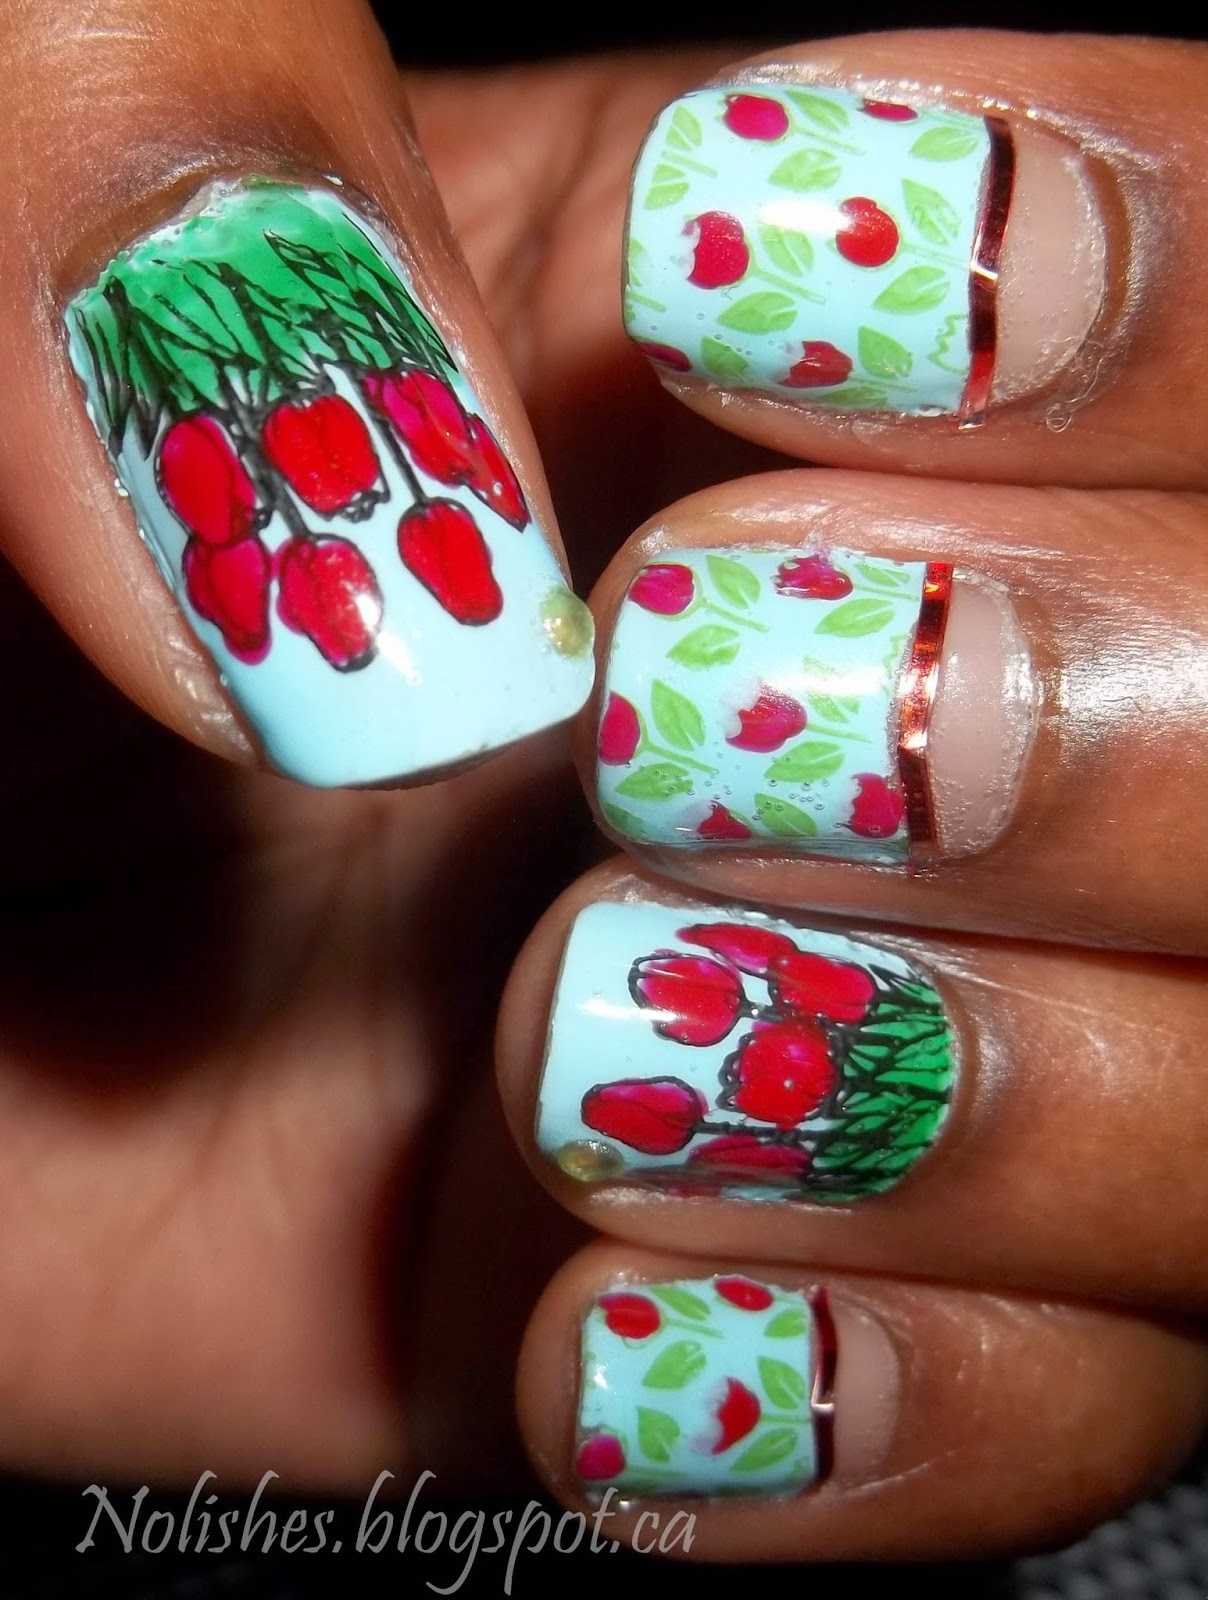 Tulip Themed Half-Moon Nail Stamping Manicure using Moyou London Pro Collection Plates 07 and 08. Polishes used: Sally Hansen Complete Salon Manicure in 'Barracuda', Essie 'Jelly Apple', NYC Quick Dry Nail Polish in 'High Line Green', Nfu OH Jelly Syrup Series JS34, and Rimmel 'Black Satin'